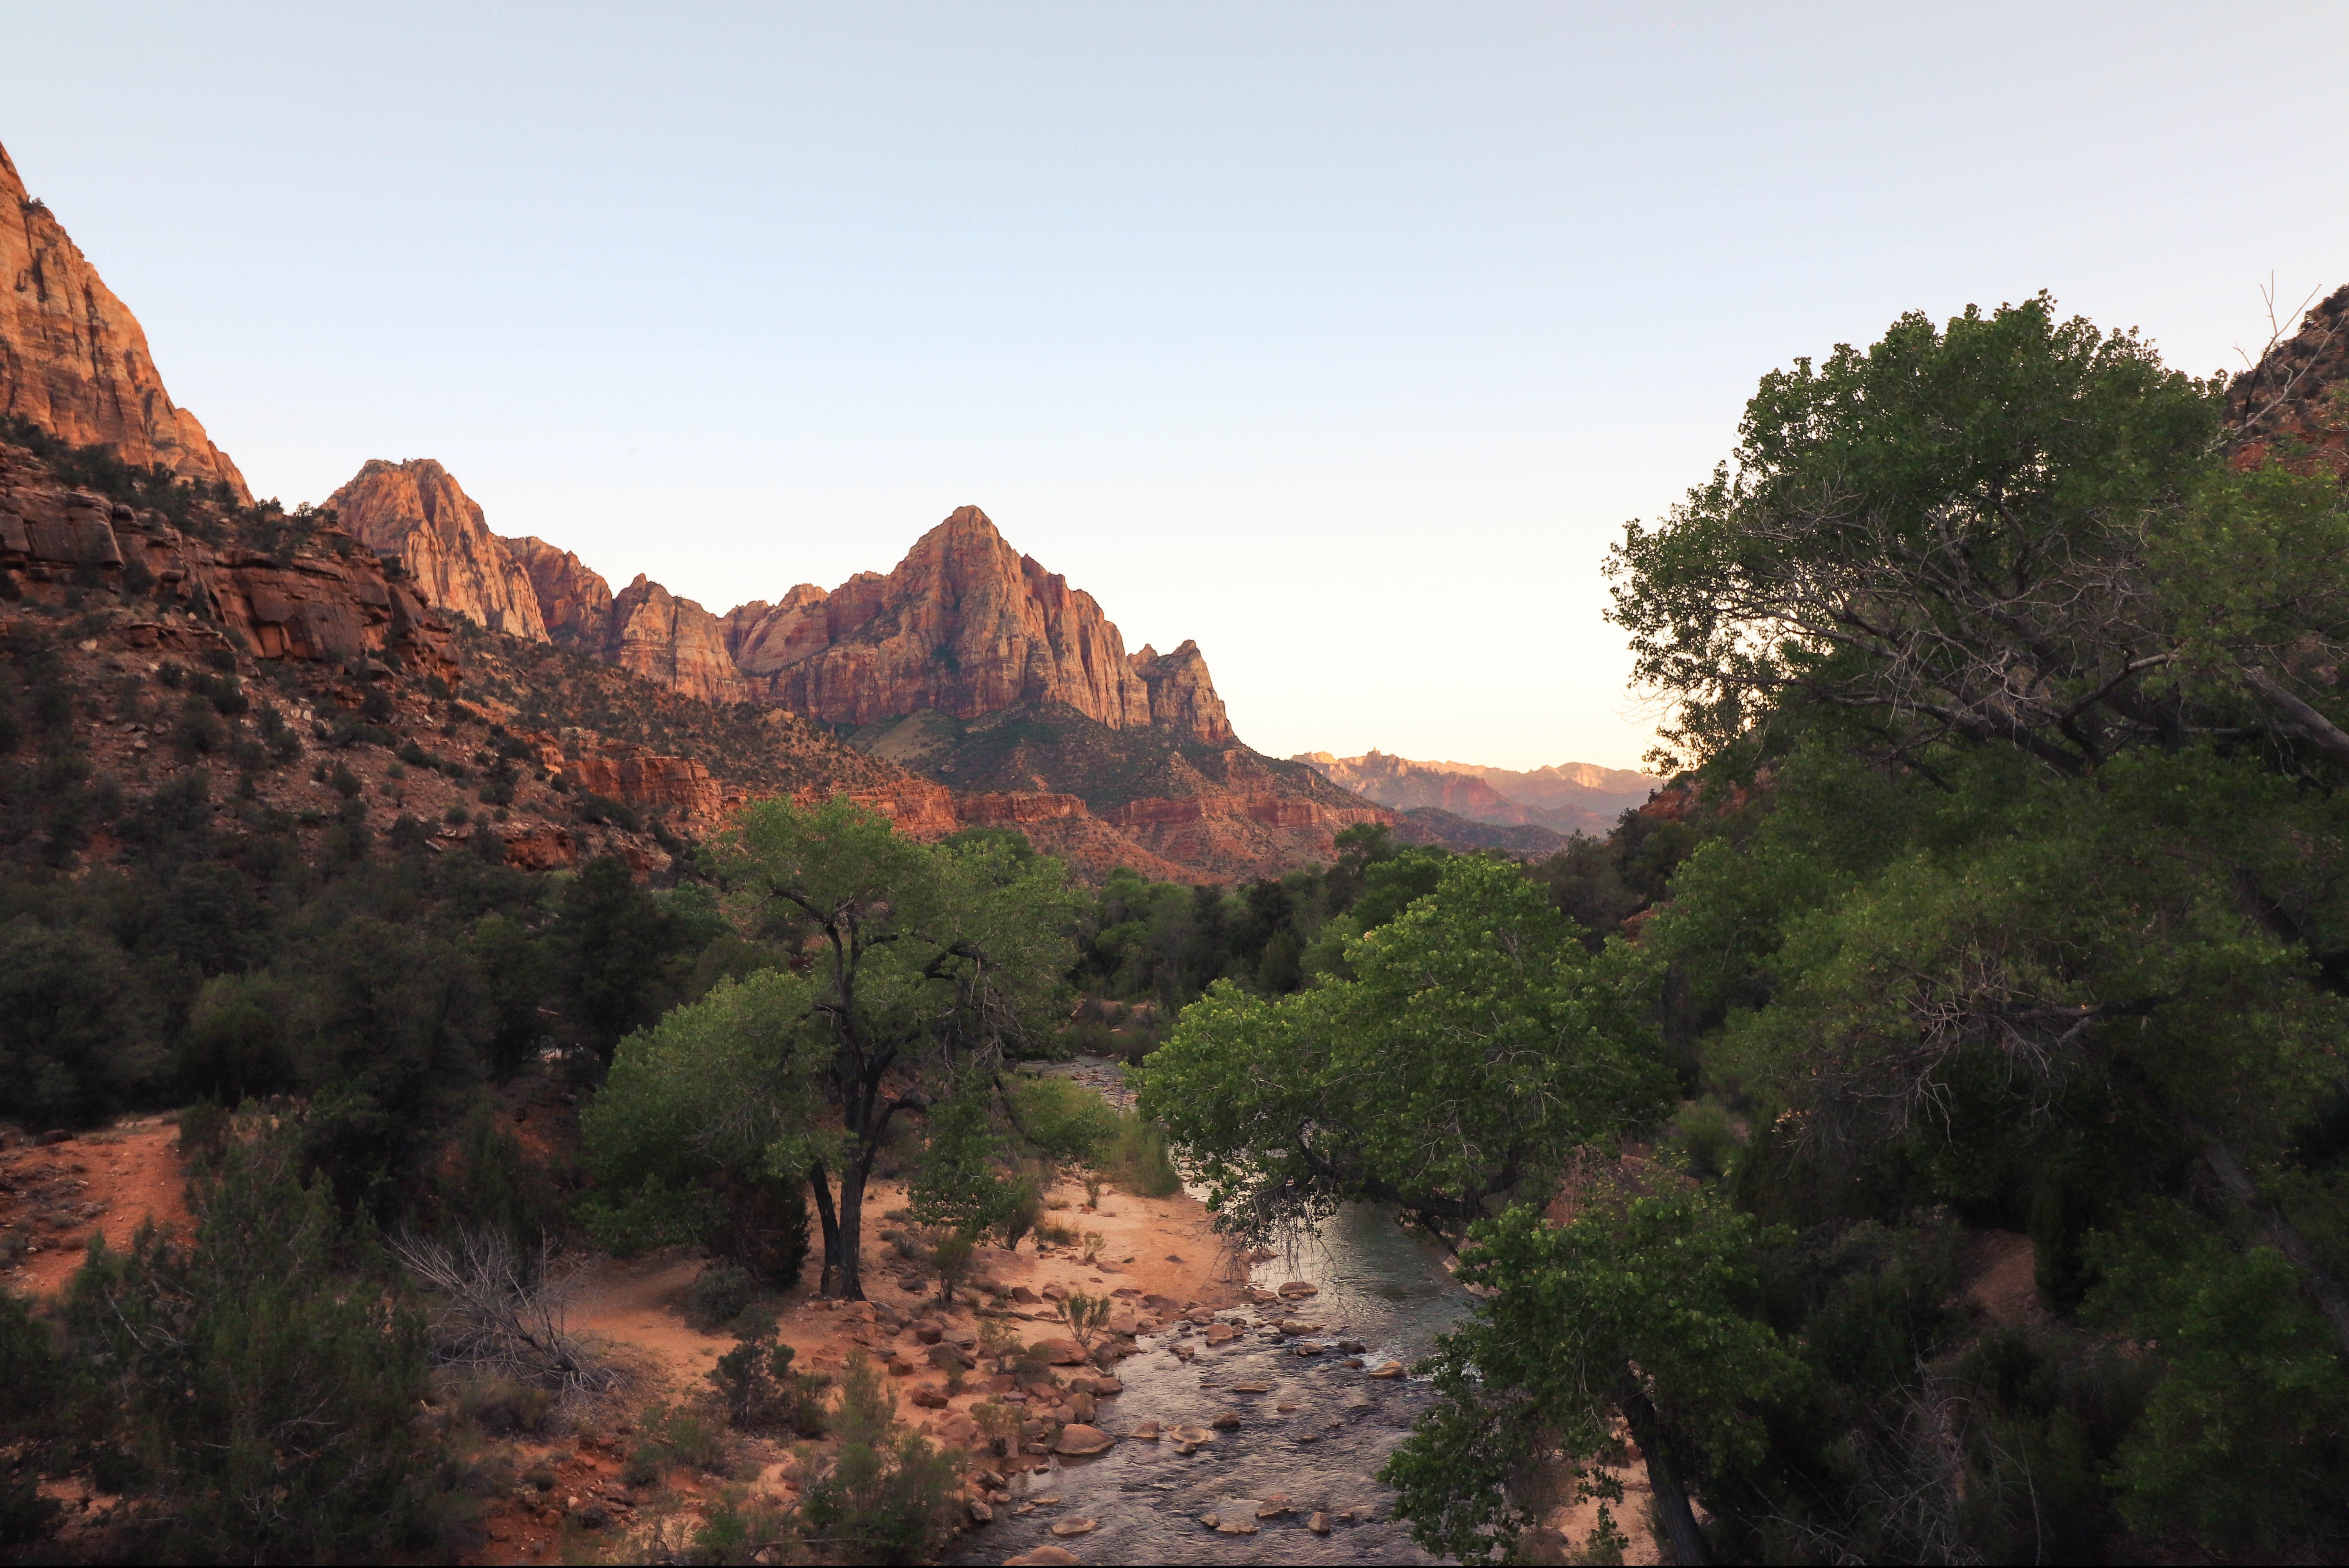 Amazing Photos From Zion National Park